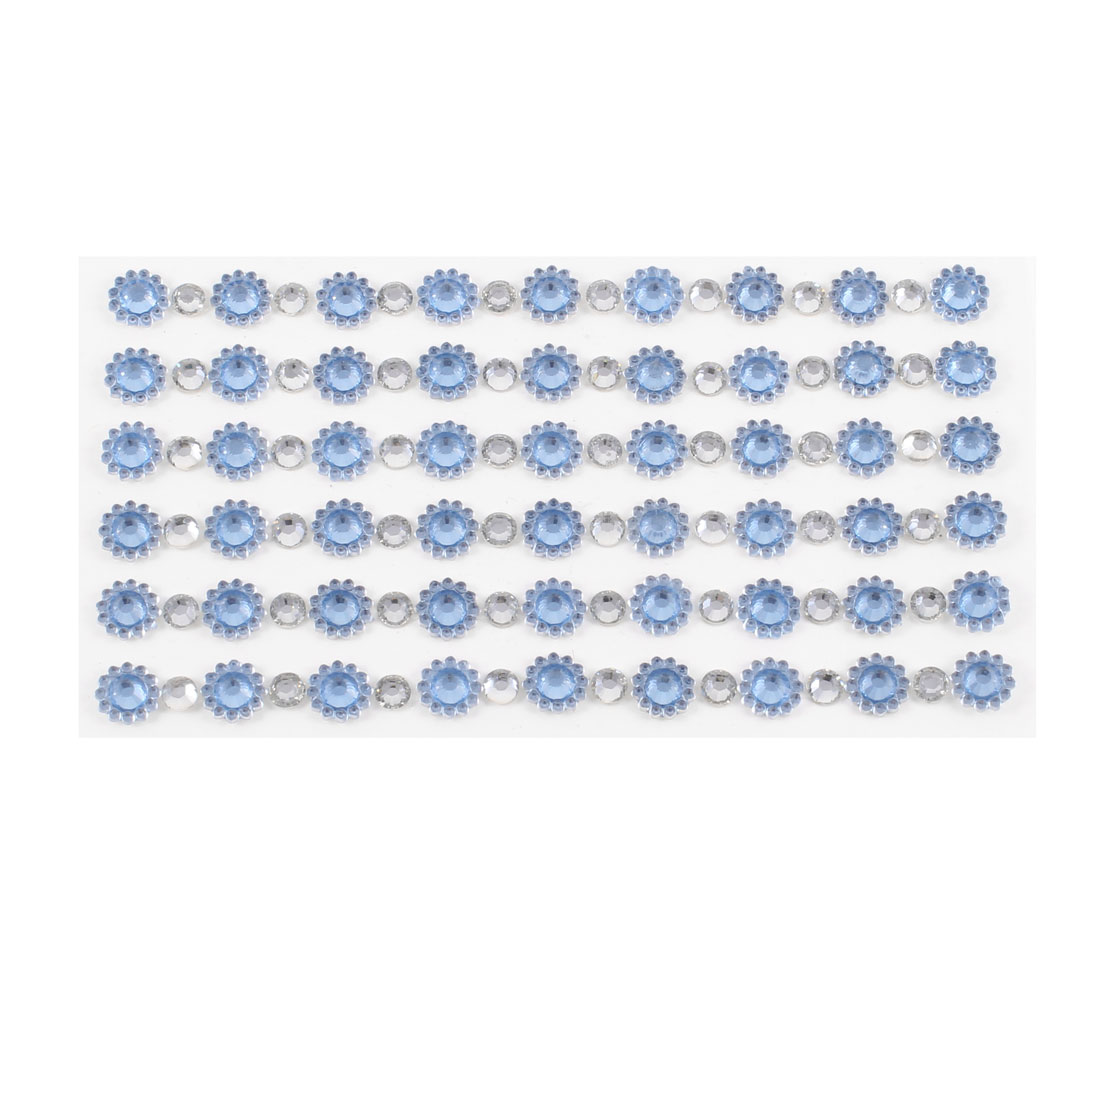 Light Blue Shiny Rhinestones Floral Auto Car Phone Sticker Decoration 6 in 1